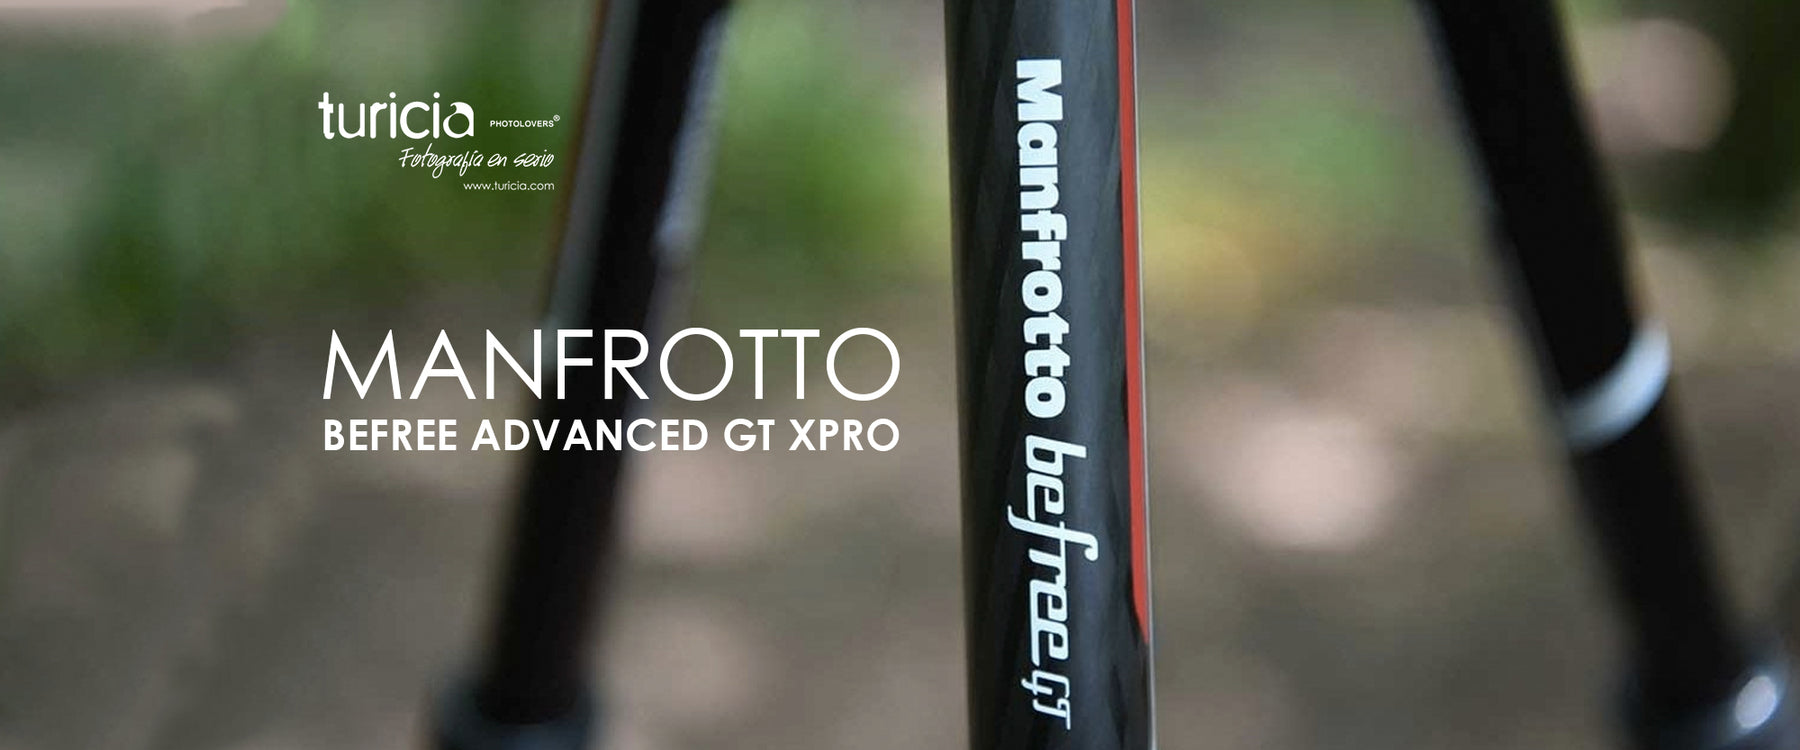 Nuevo tripie Manfrotto Befree Advanced GT XPRO